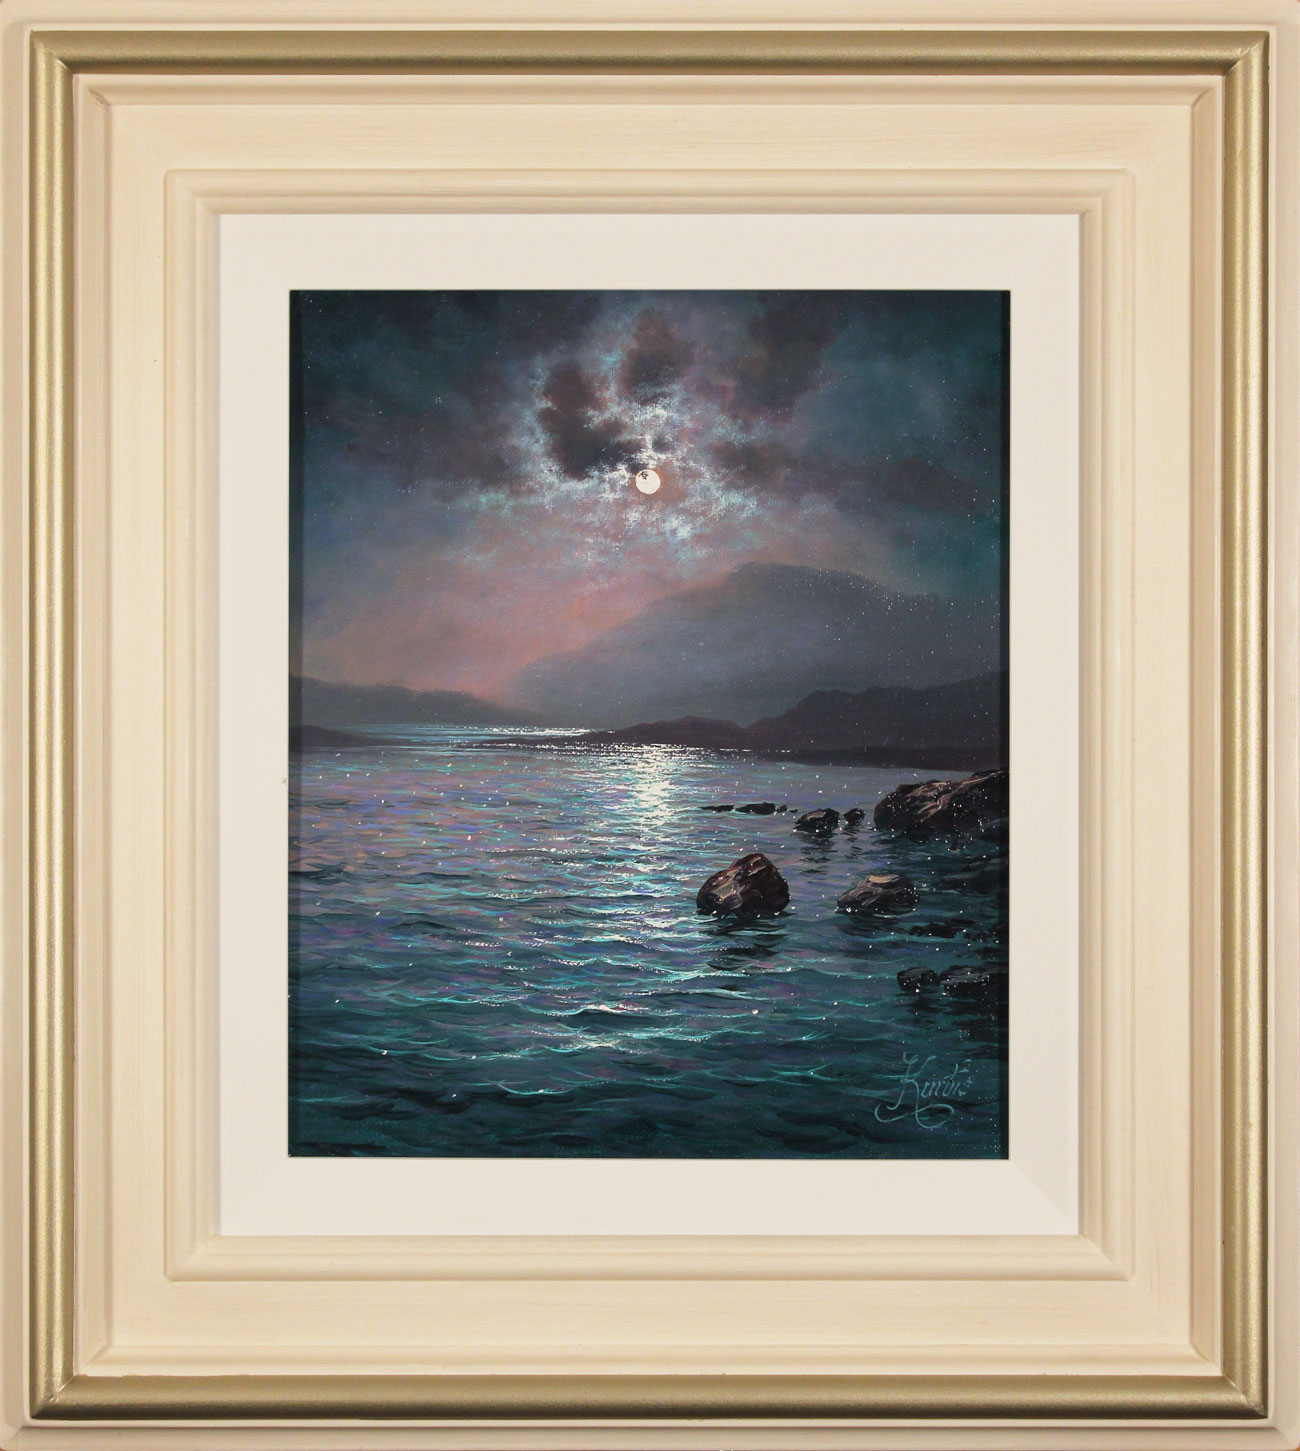 Andrew Grant Kurtis, Original oil painting on canvas, Lakeland Reflections, click to enlarge